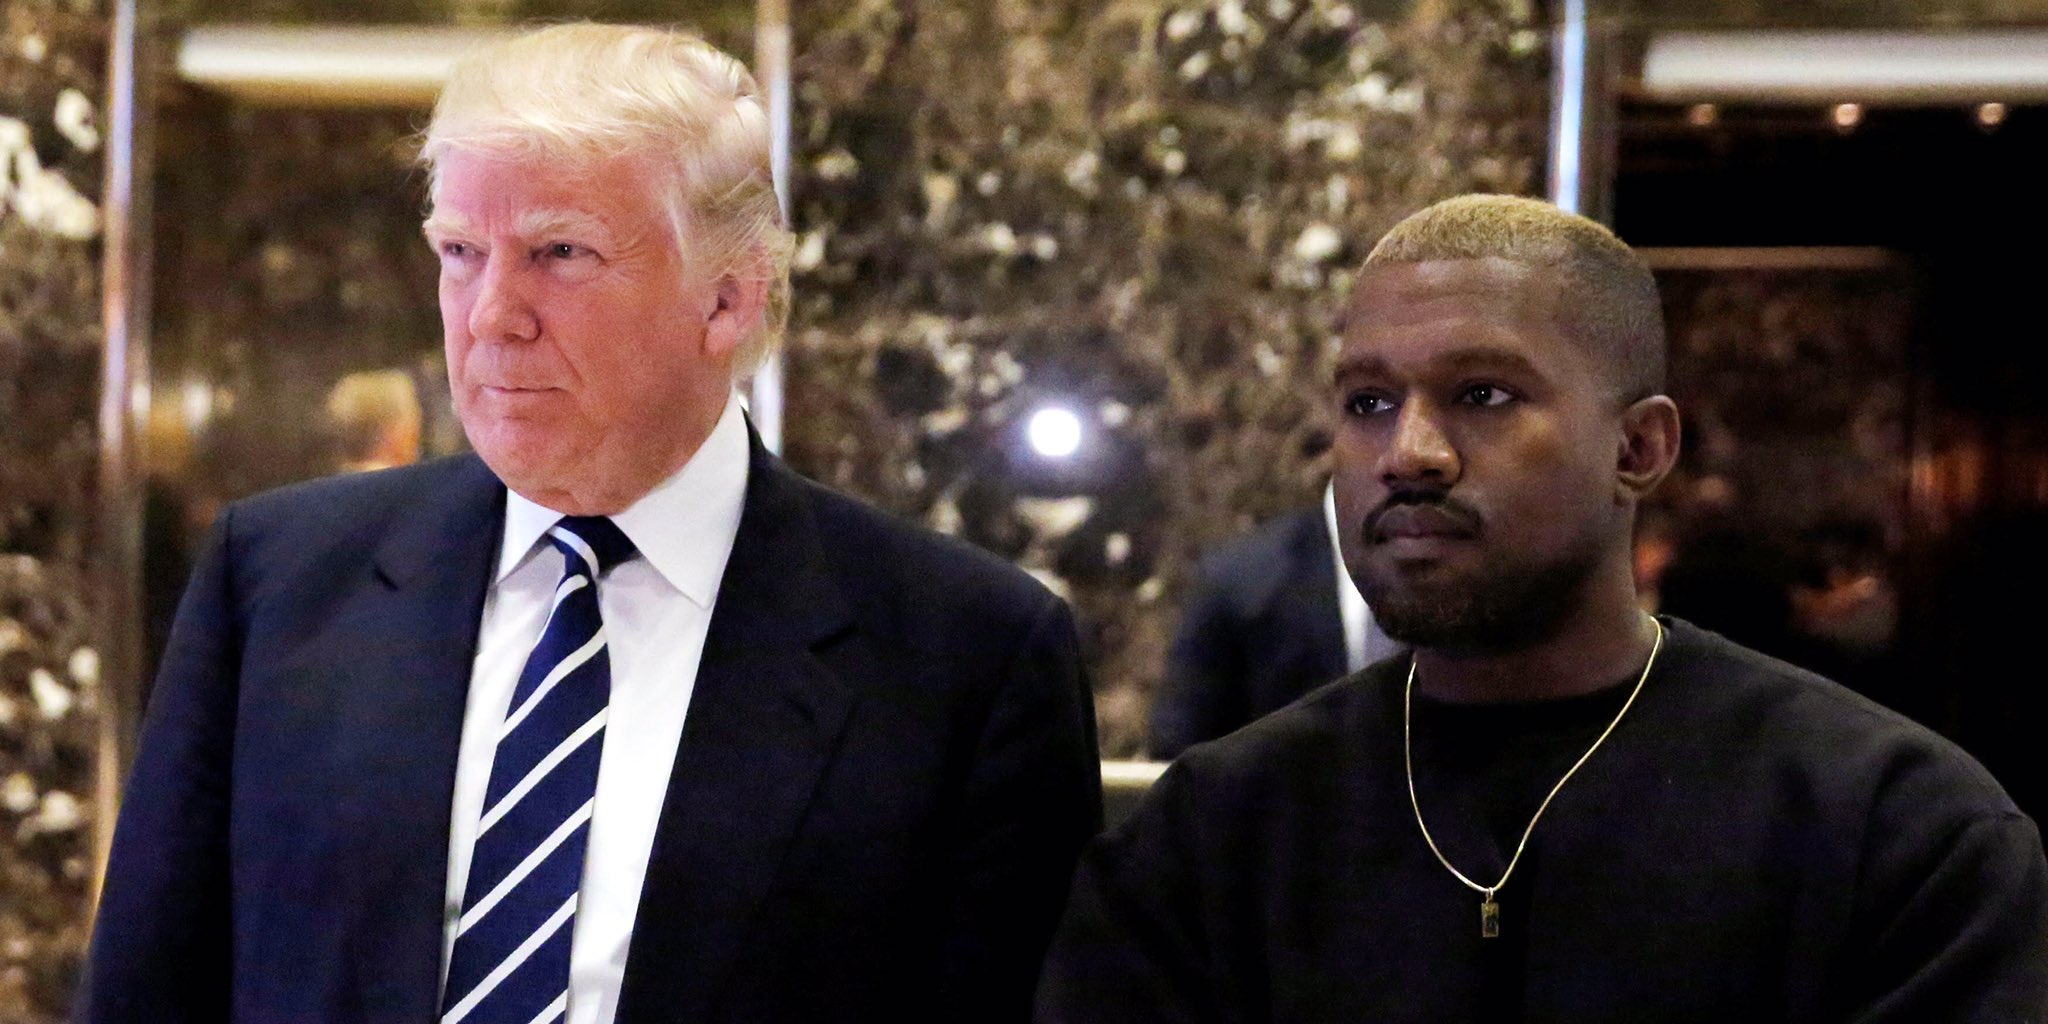 Kanye's new hair makes a lot more sense now #GoldenShowers https://t.co/Q1wvIxhGdl